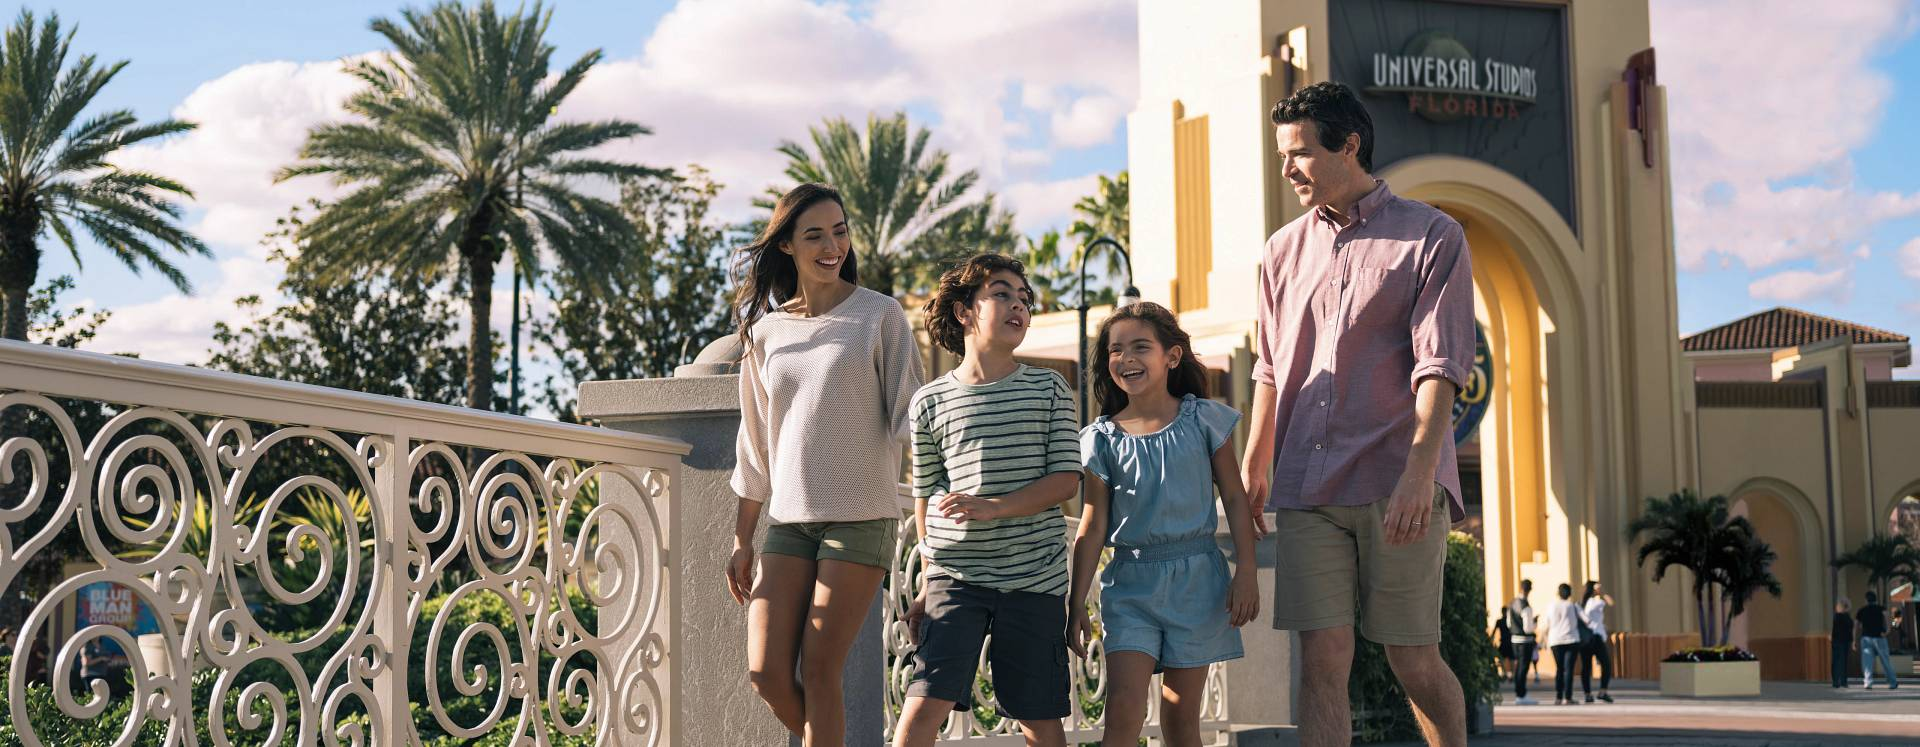 A family walking in front of the entrance to Universal Studios Florida